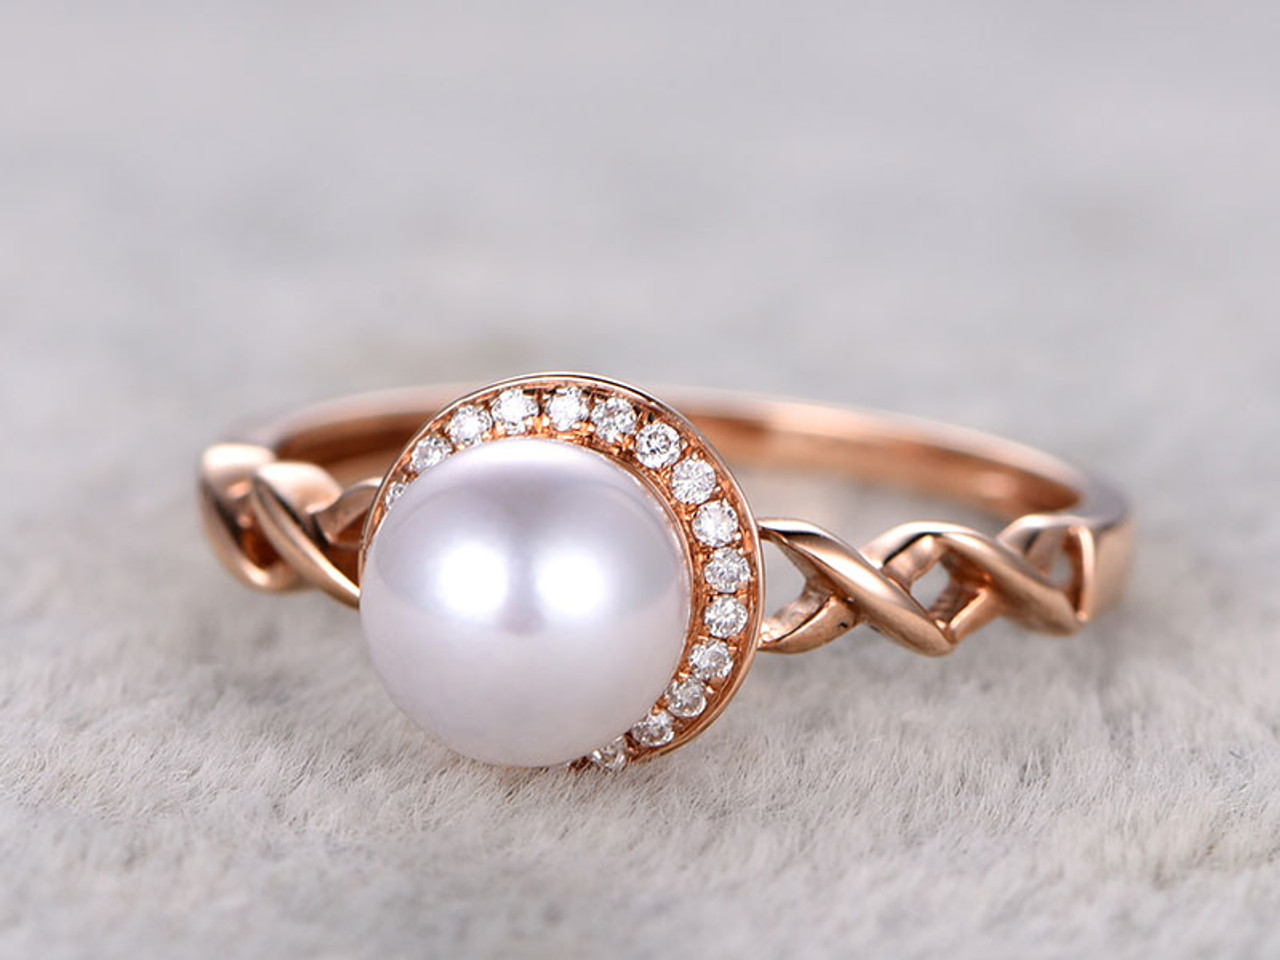 michelliadesigns via gold for beautiful ring vintage romantic pearls oh engagement solitaire a so rings rose pearl instagram look